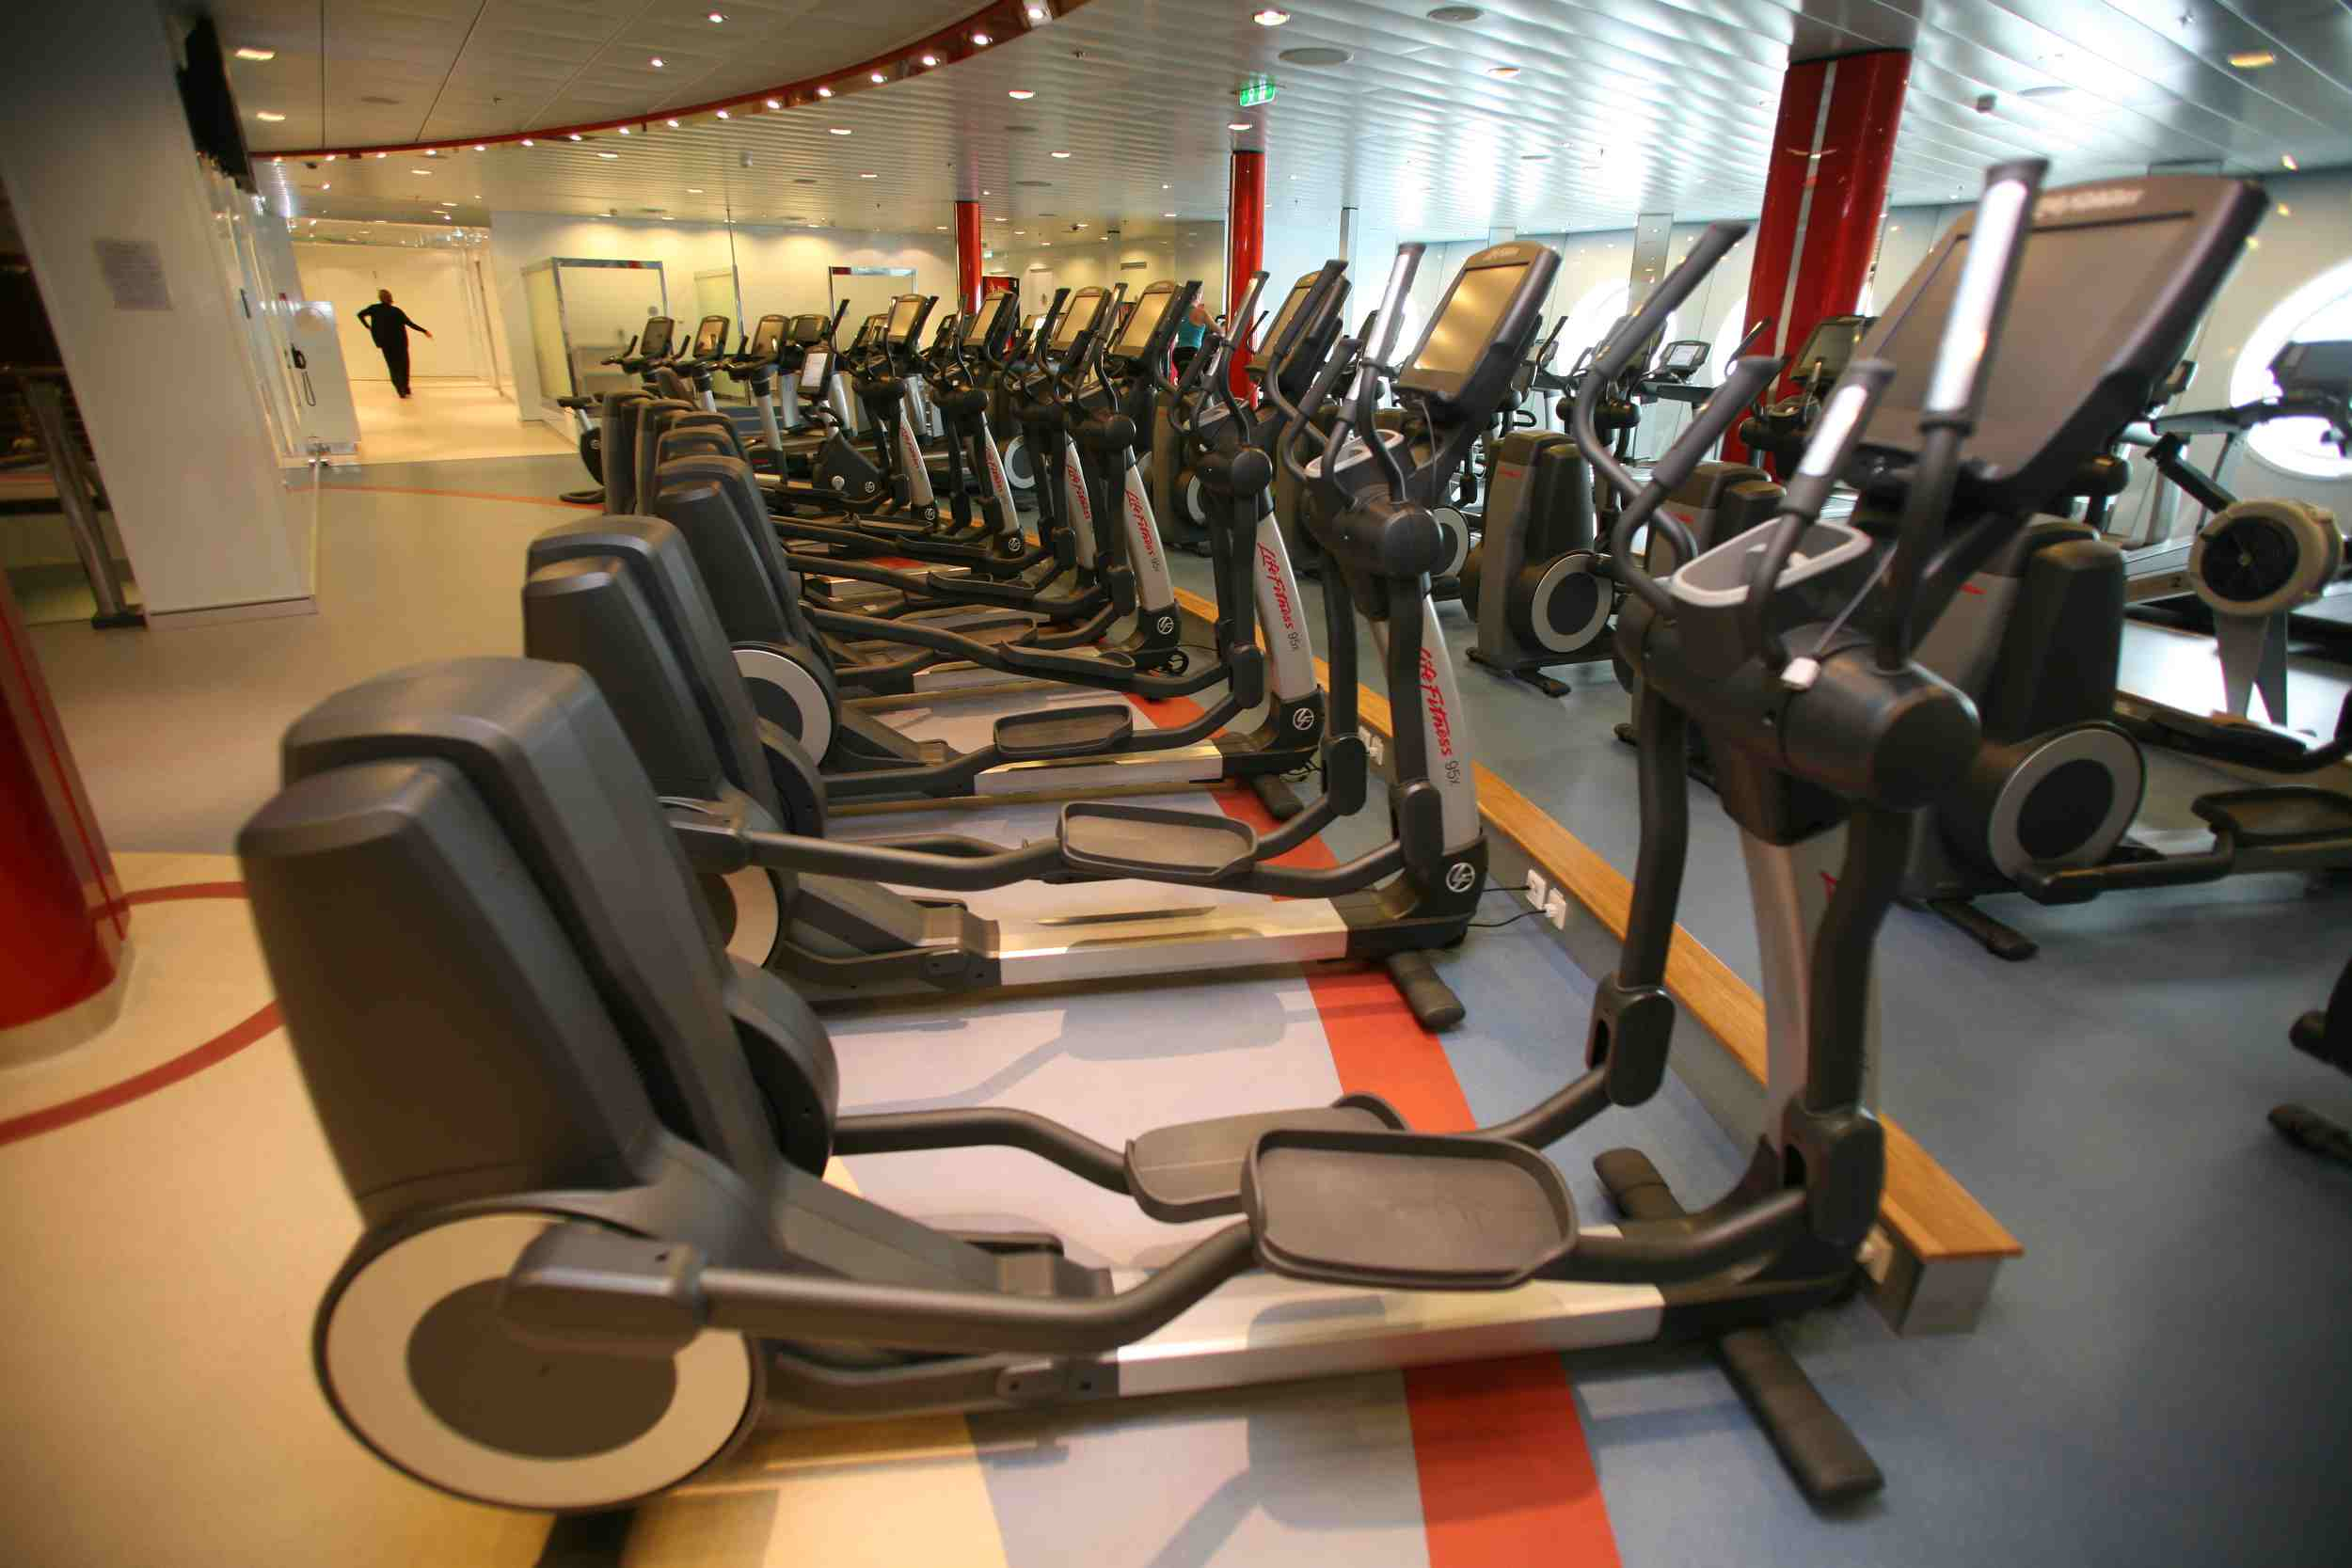 Allure of the Seas Fitness Center